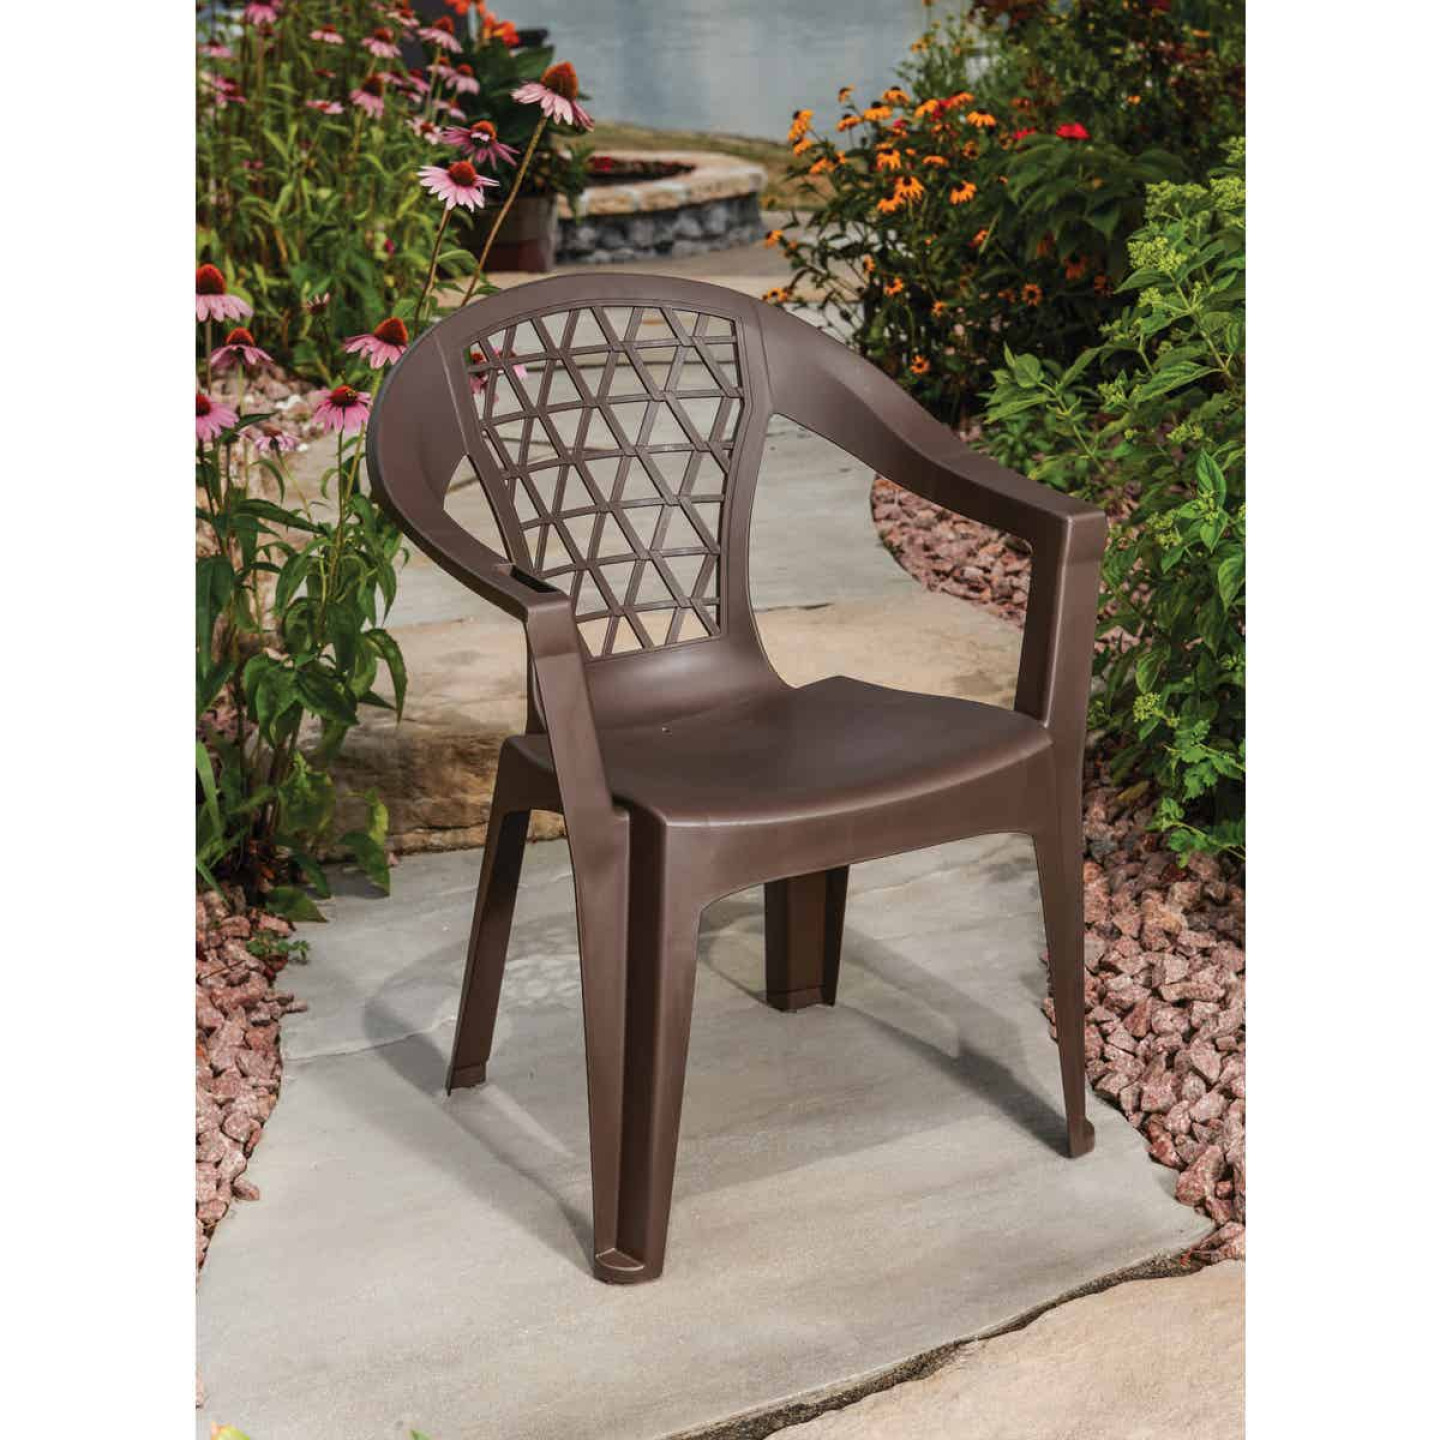 Adams Penza Earth Brown Resin Stackable Chair Image 2